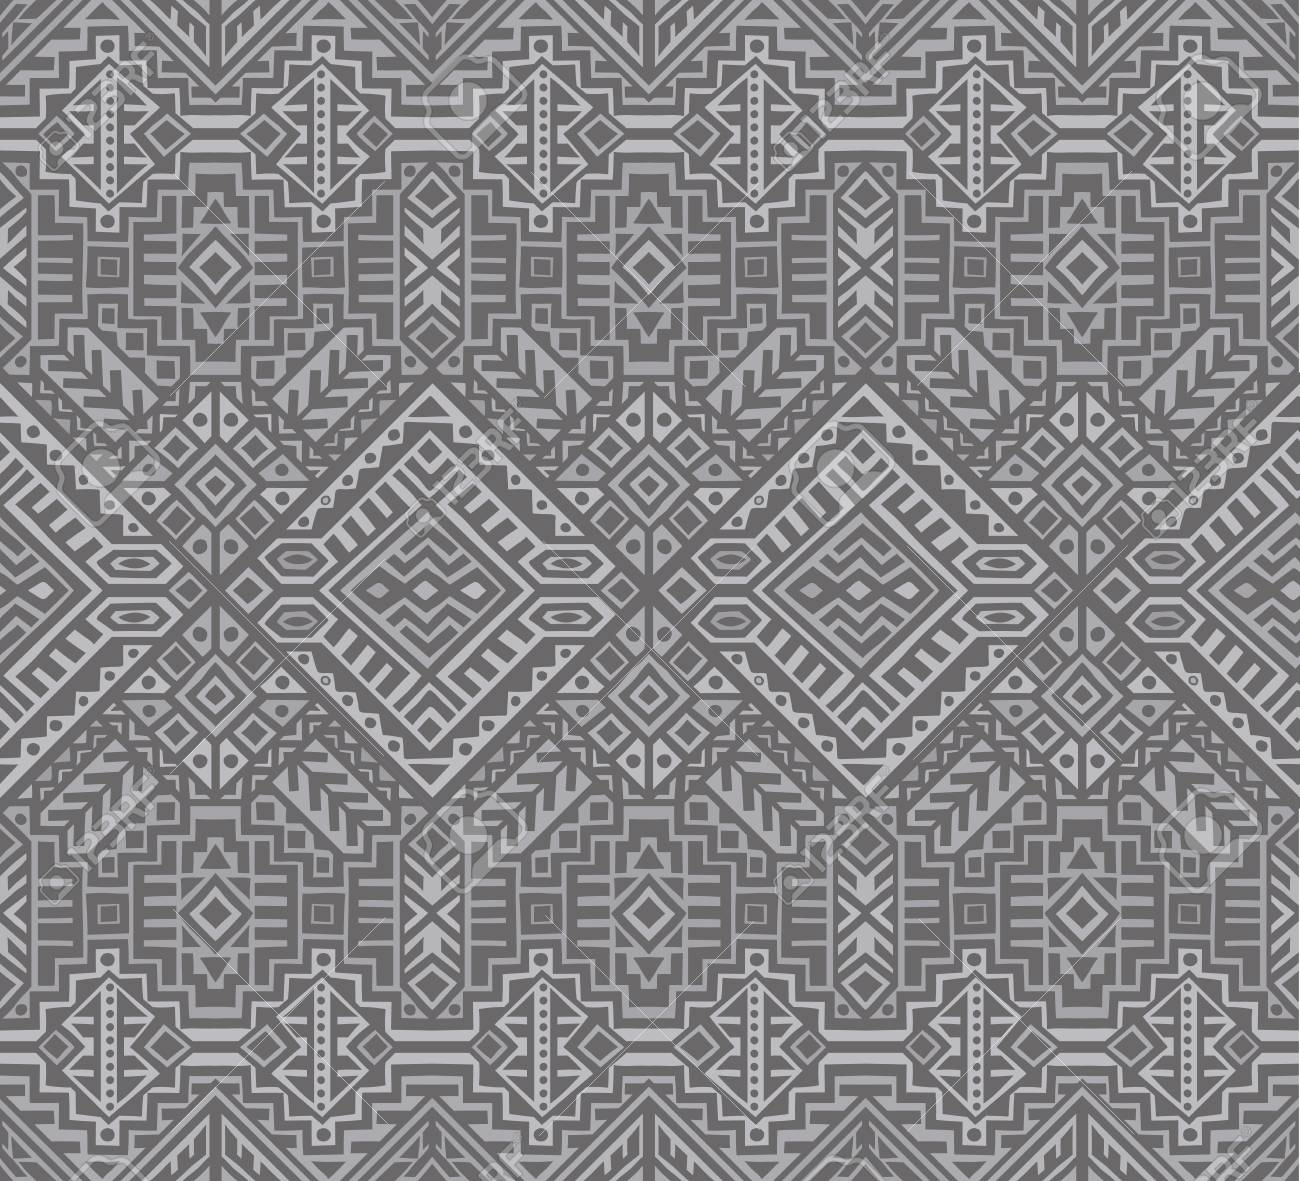 Simmetric seamless pattern in ethnic style. Tribal geometric ornament, perfect for textile design, site background, wrapping paper and other endless fill. Trendy boho tile. - 111793823